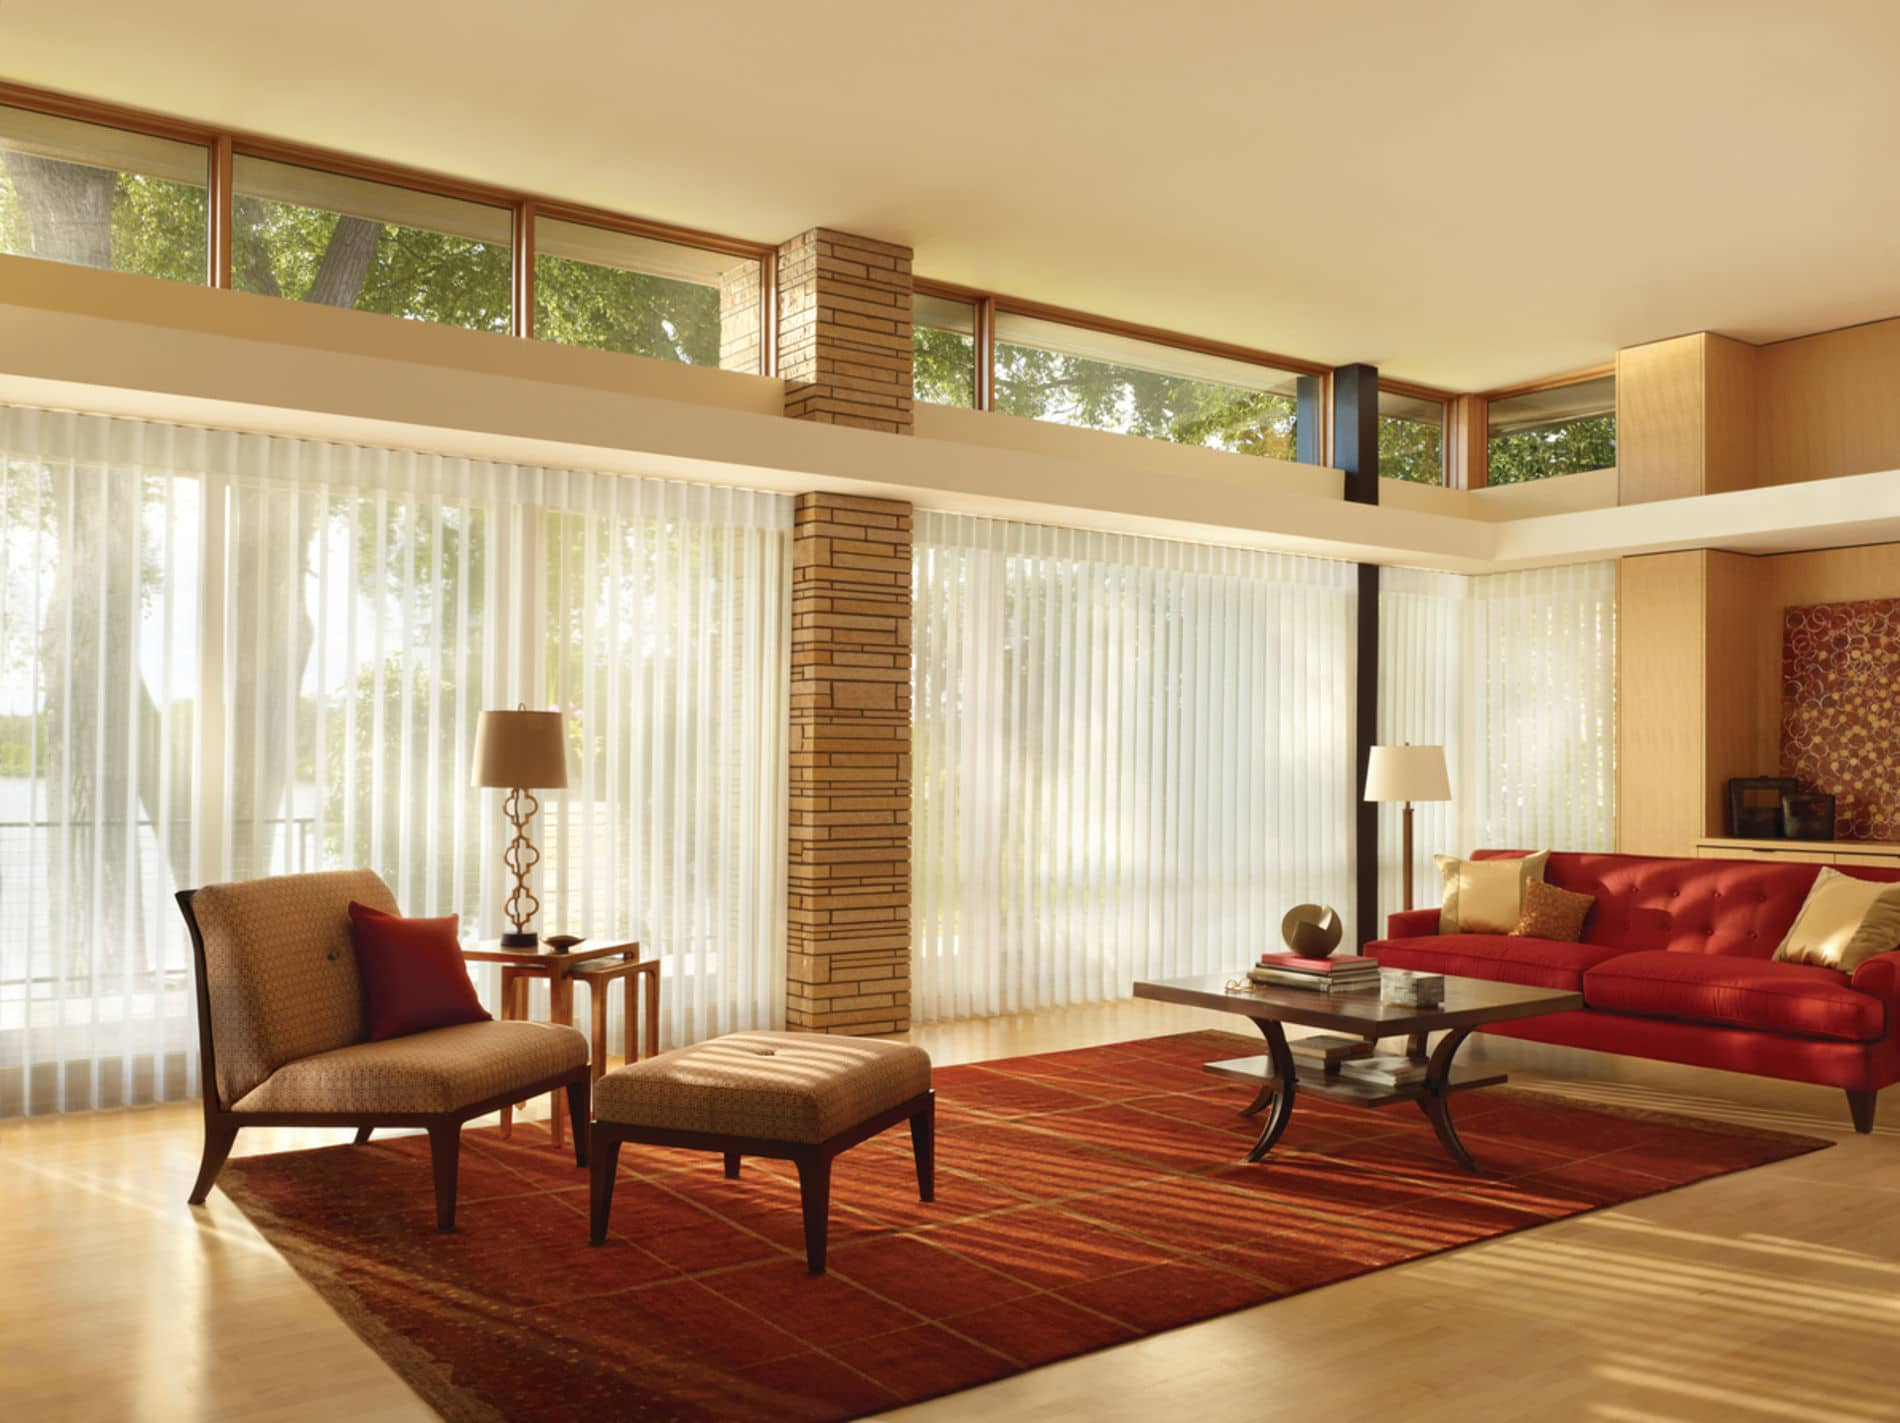 HunterDouglas by Shiretown Home Improvement Luminette Privacy Sheers, Fabric/Material: Stria